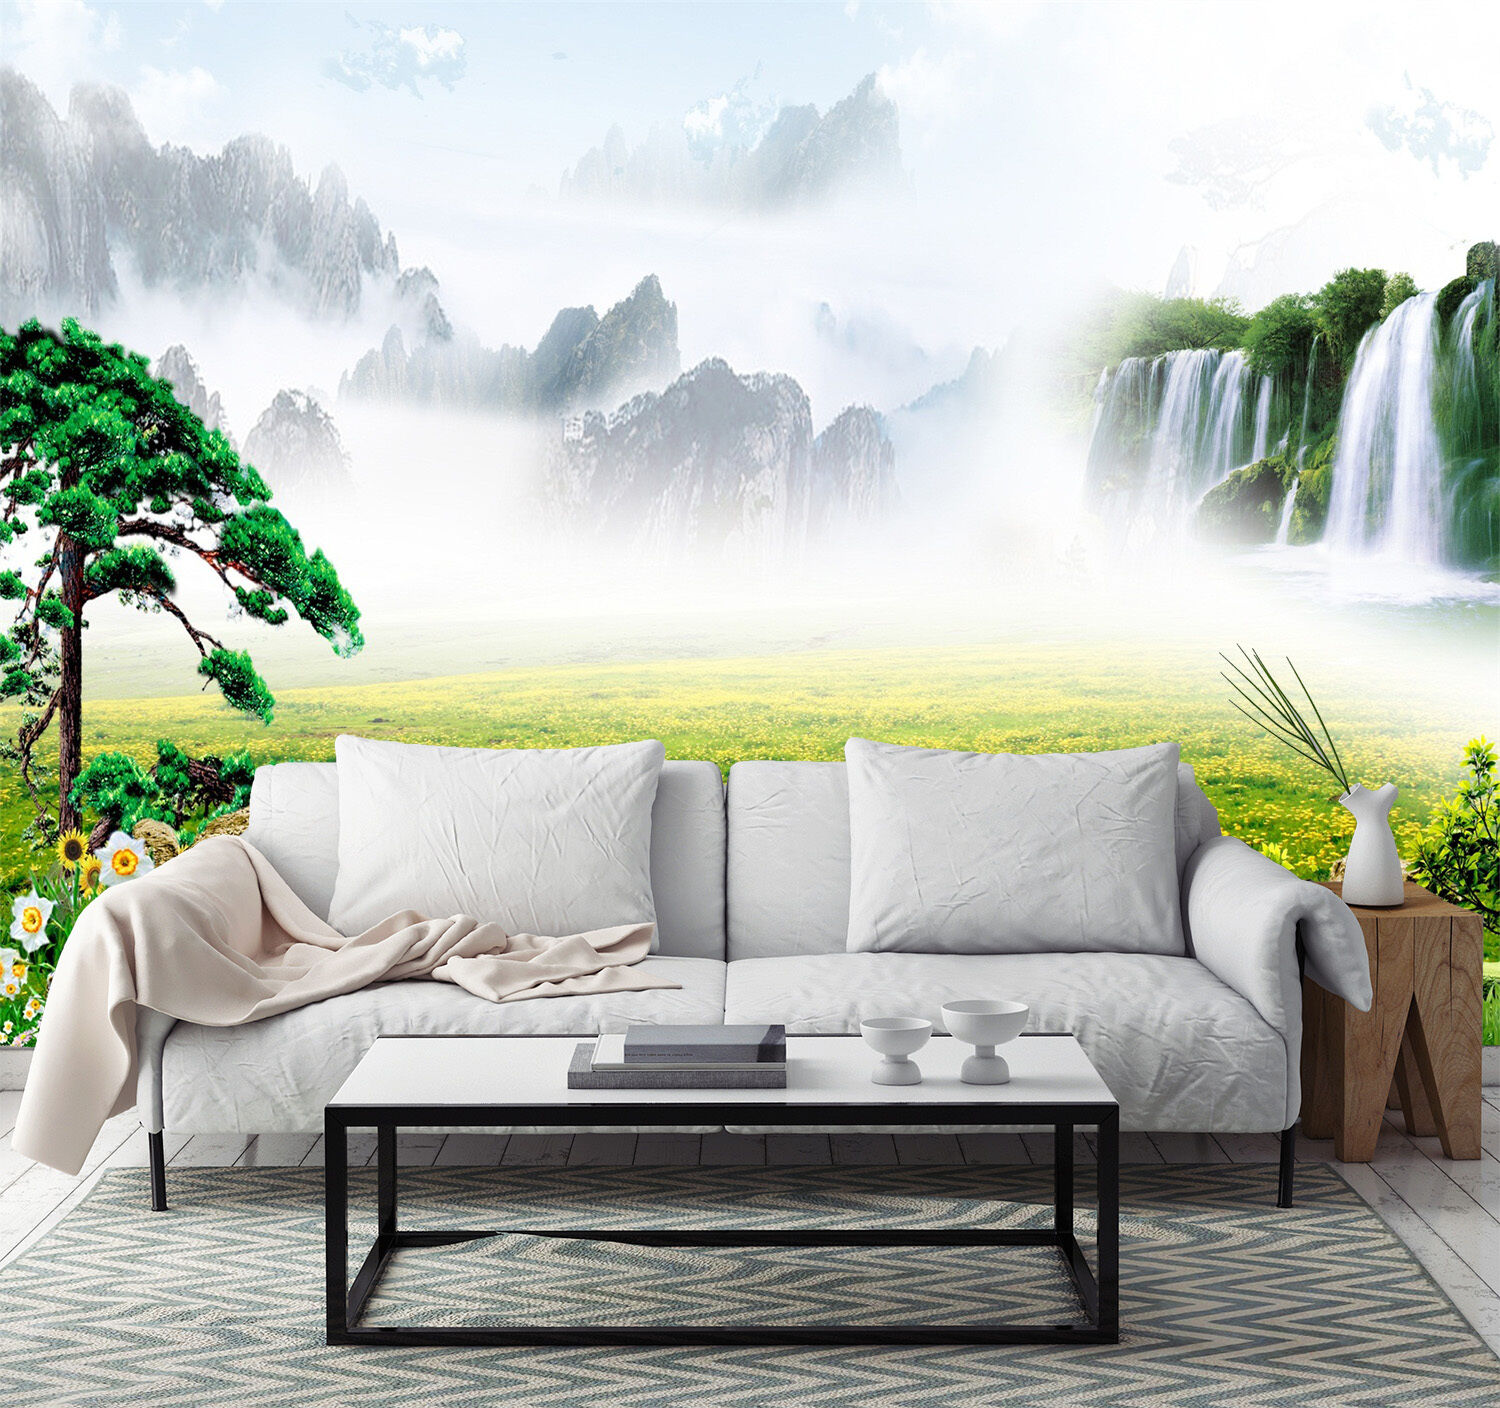 3D Grassland And Mountains 8 Paper Wall Print Wall Decal Wall Deco Indoor Murals